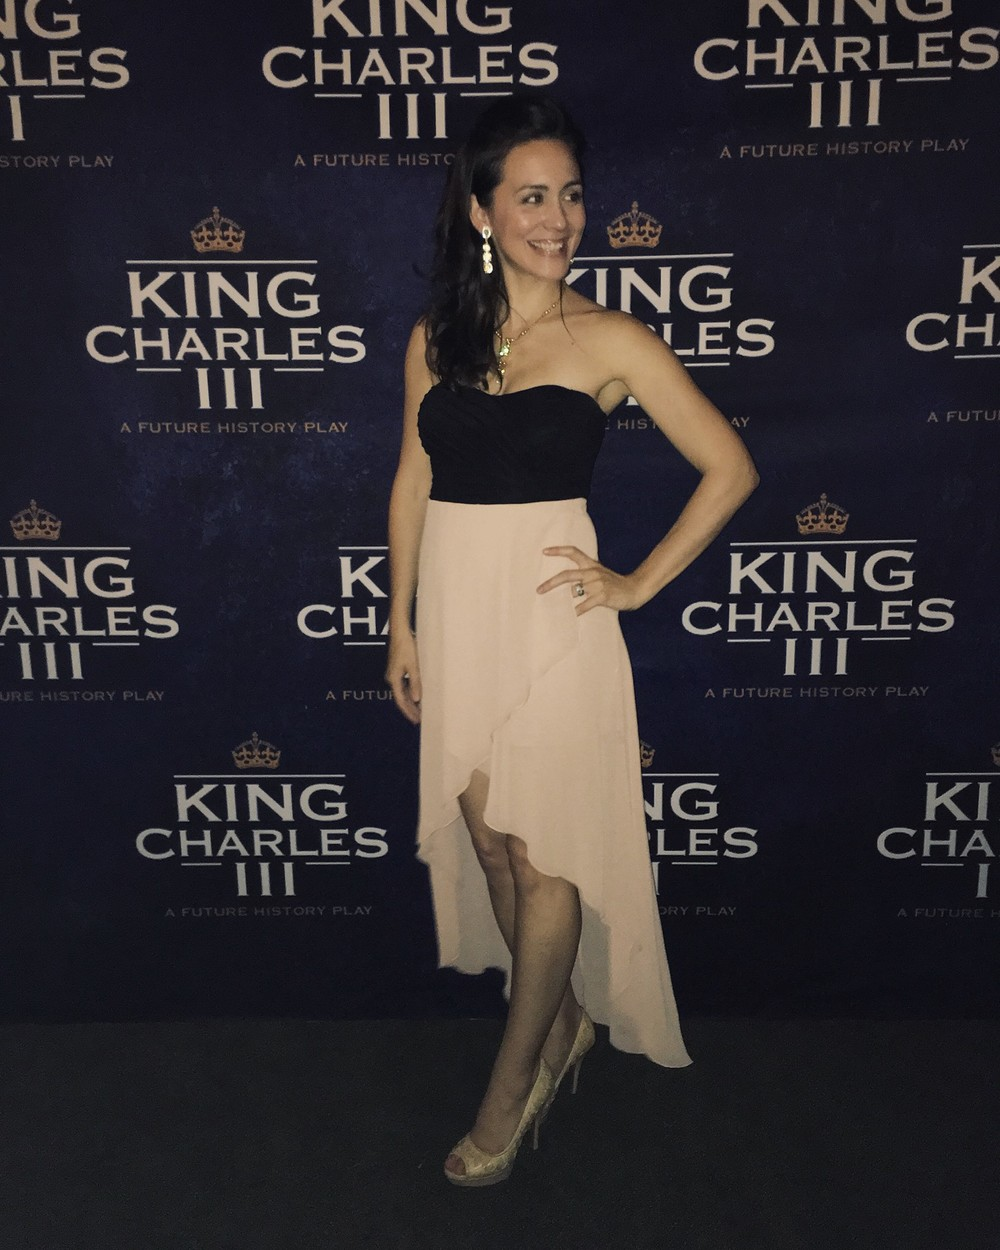 Broadway Debut - King Charles III